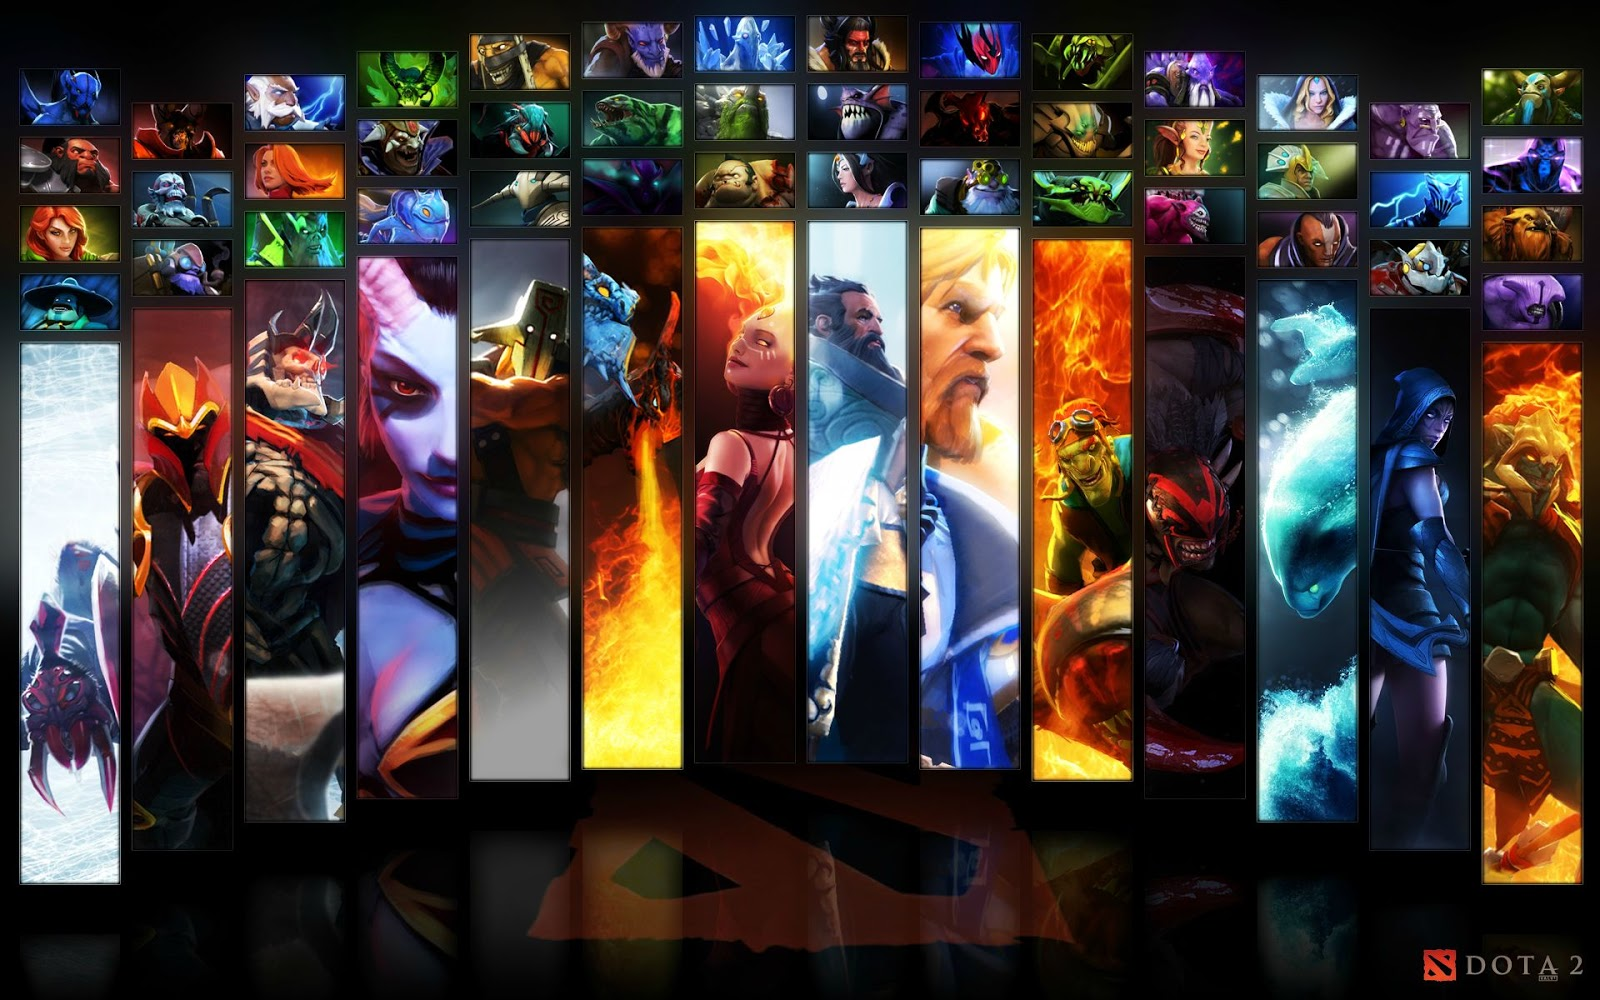 Dota 2 Wallpapers Dota 2 Wallpaper Heroes Icon Mix With